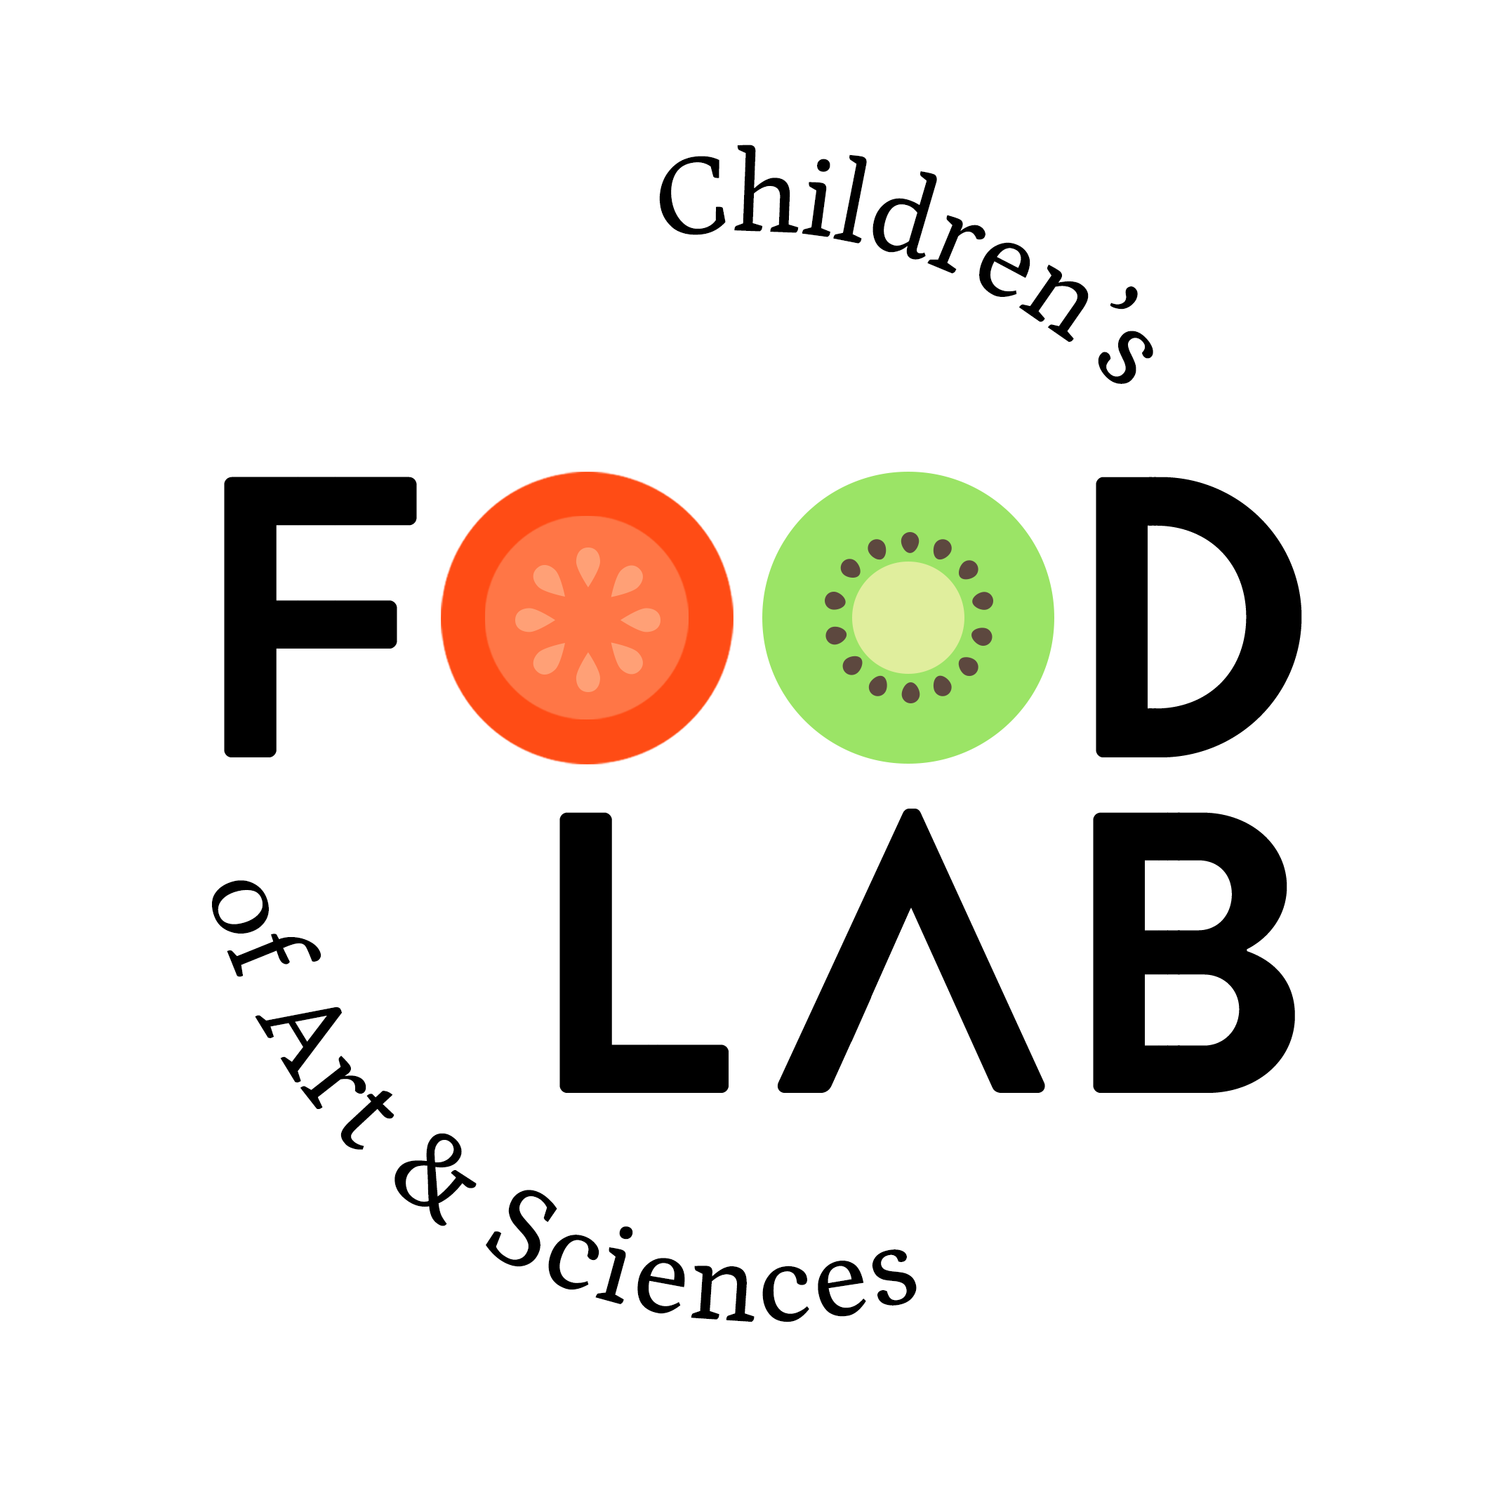 The Children's Food Lab